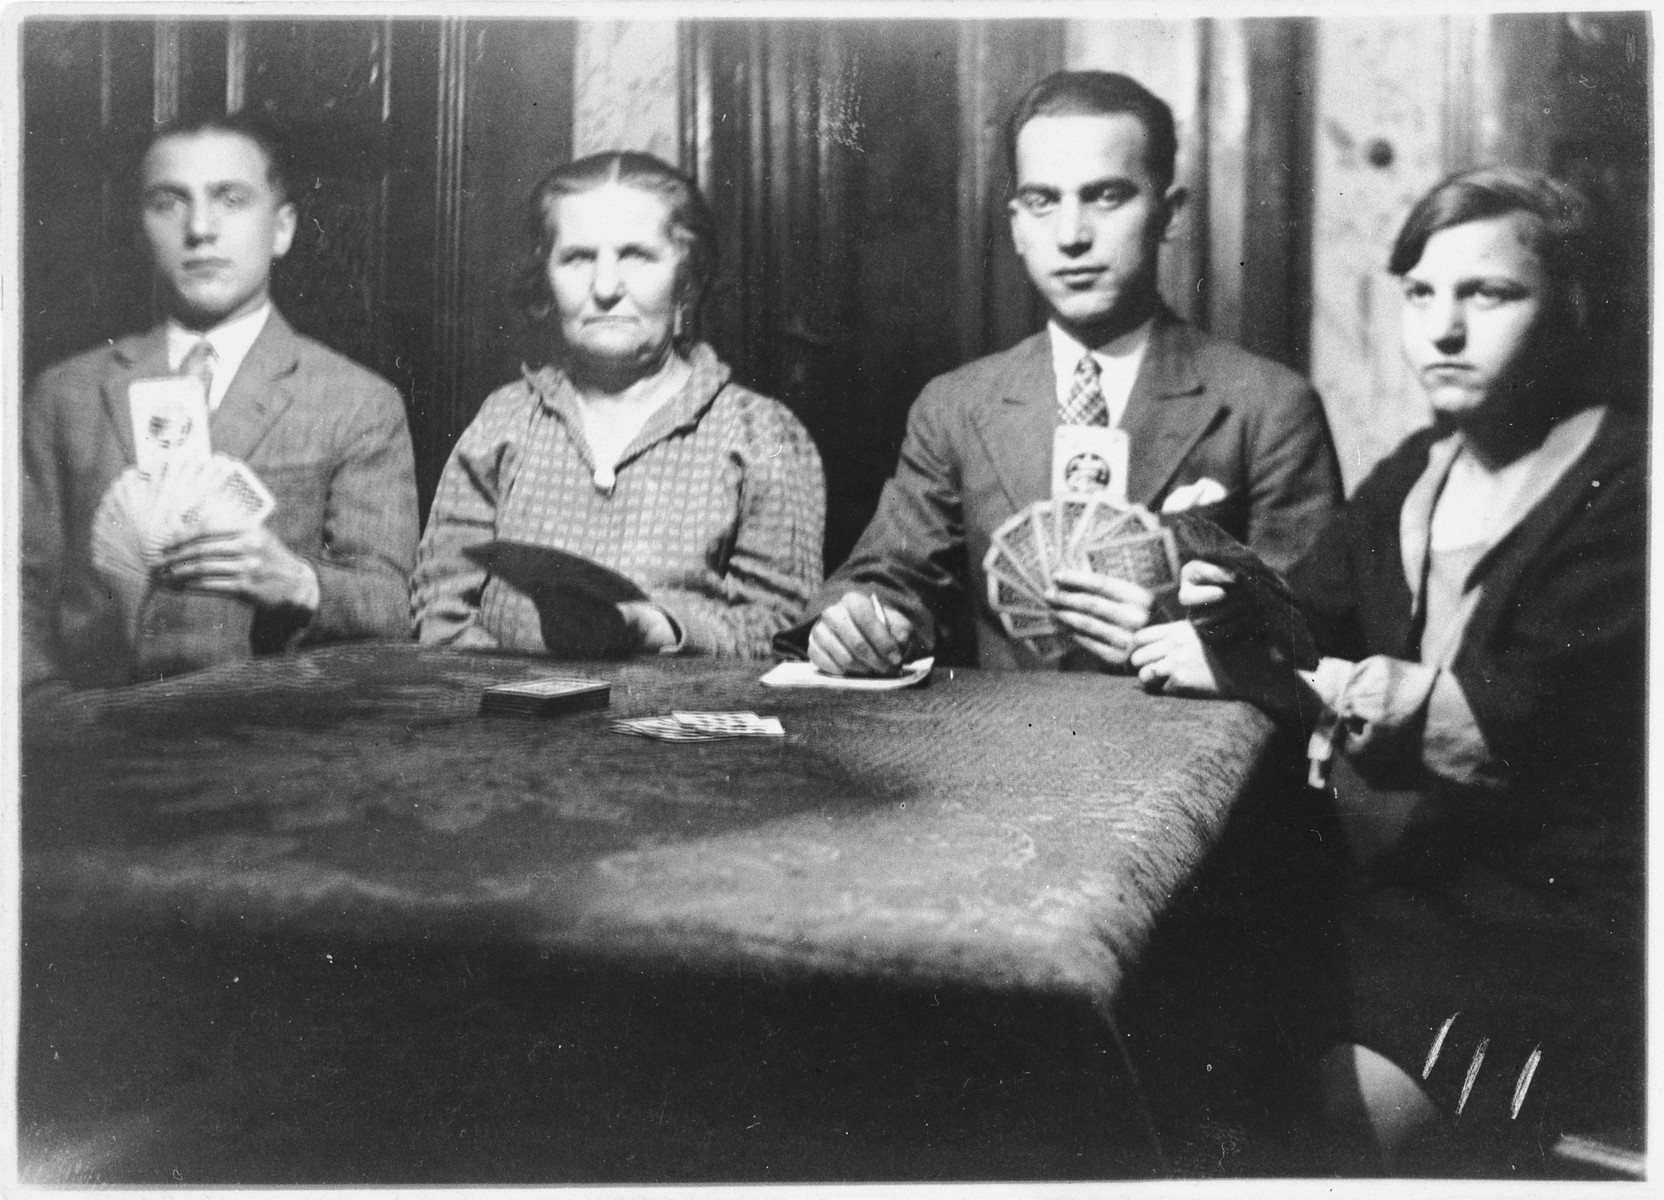 The Lewitzky family gathers for a family card game.  Sigmund Lewitzky is seated second from the right.